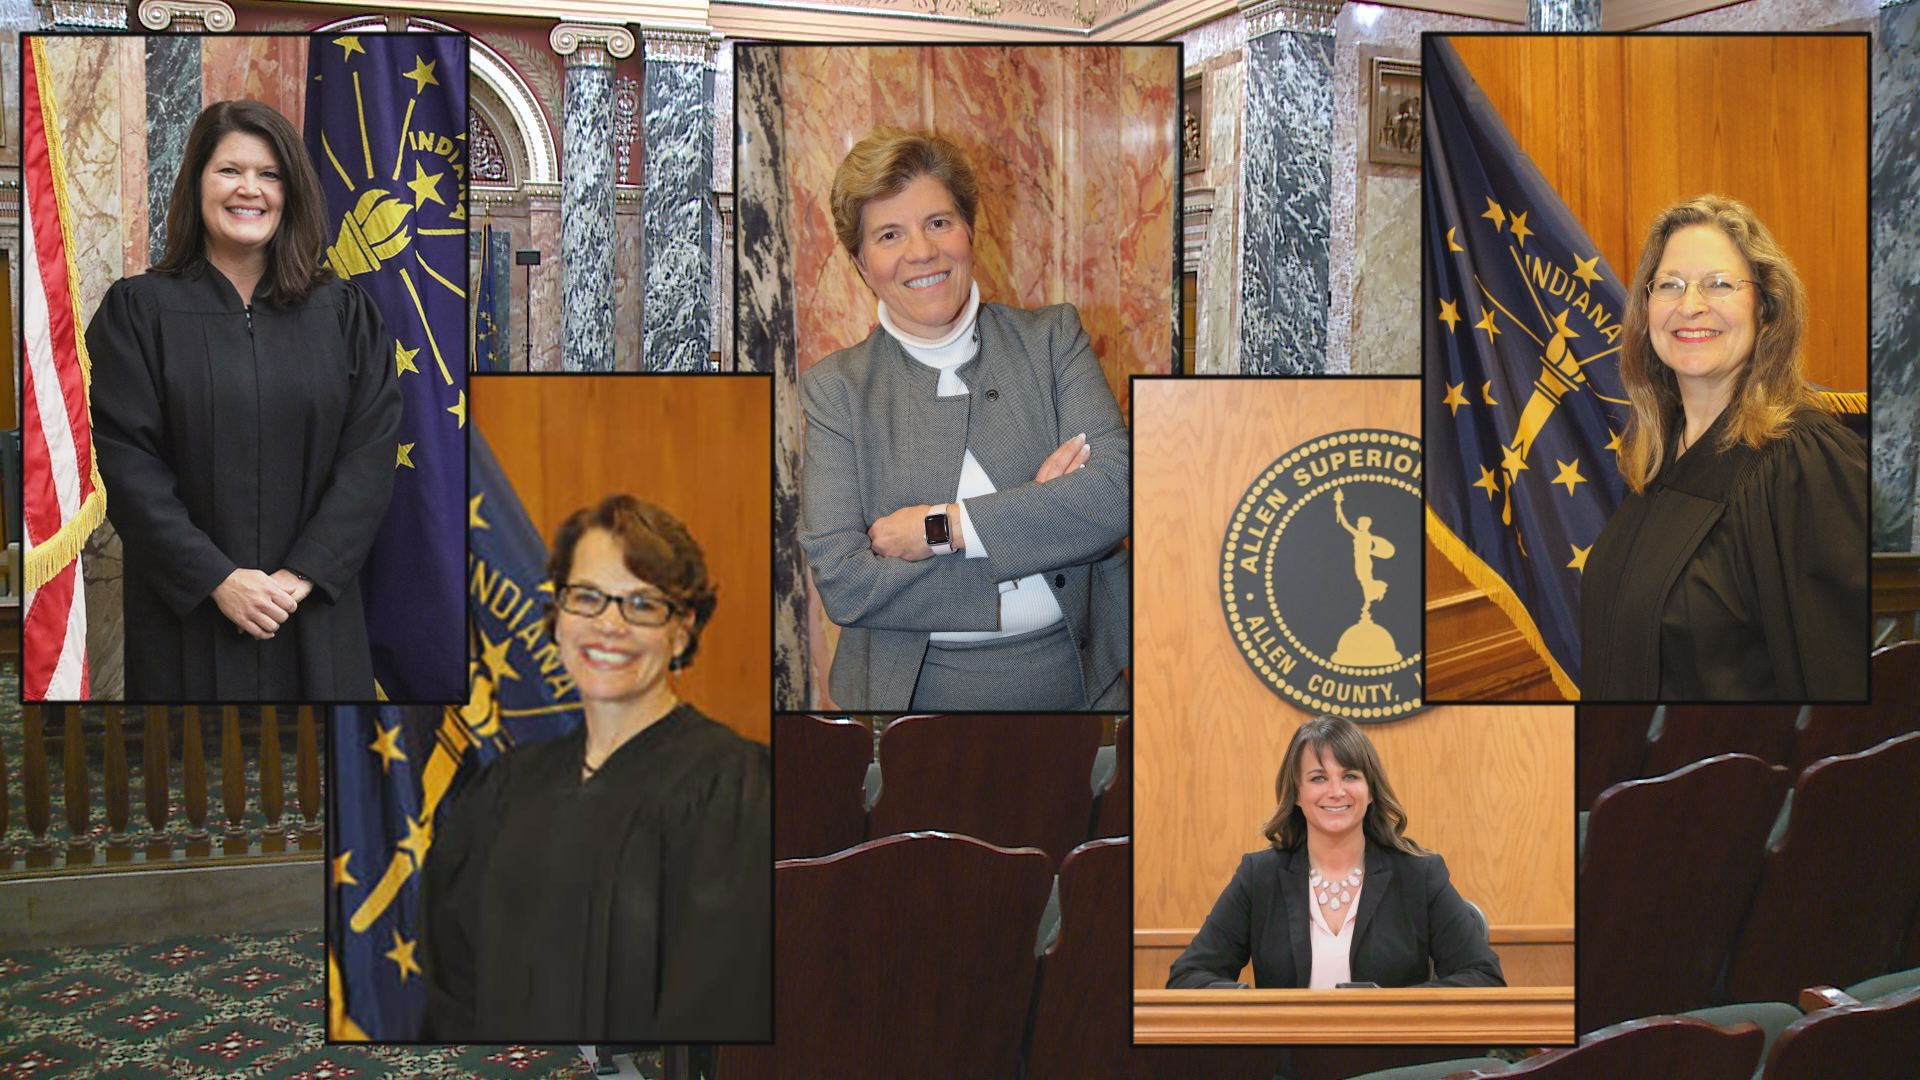 JUDGES ALL FIVE_1552059372325.jpg.jpg